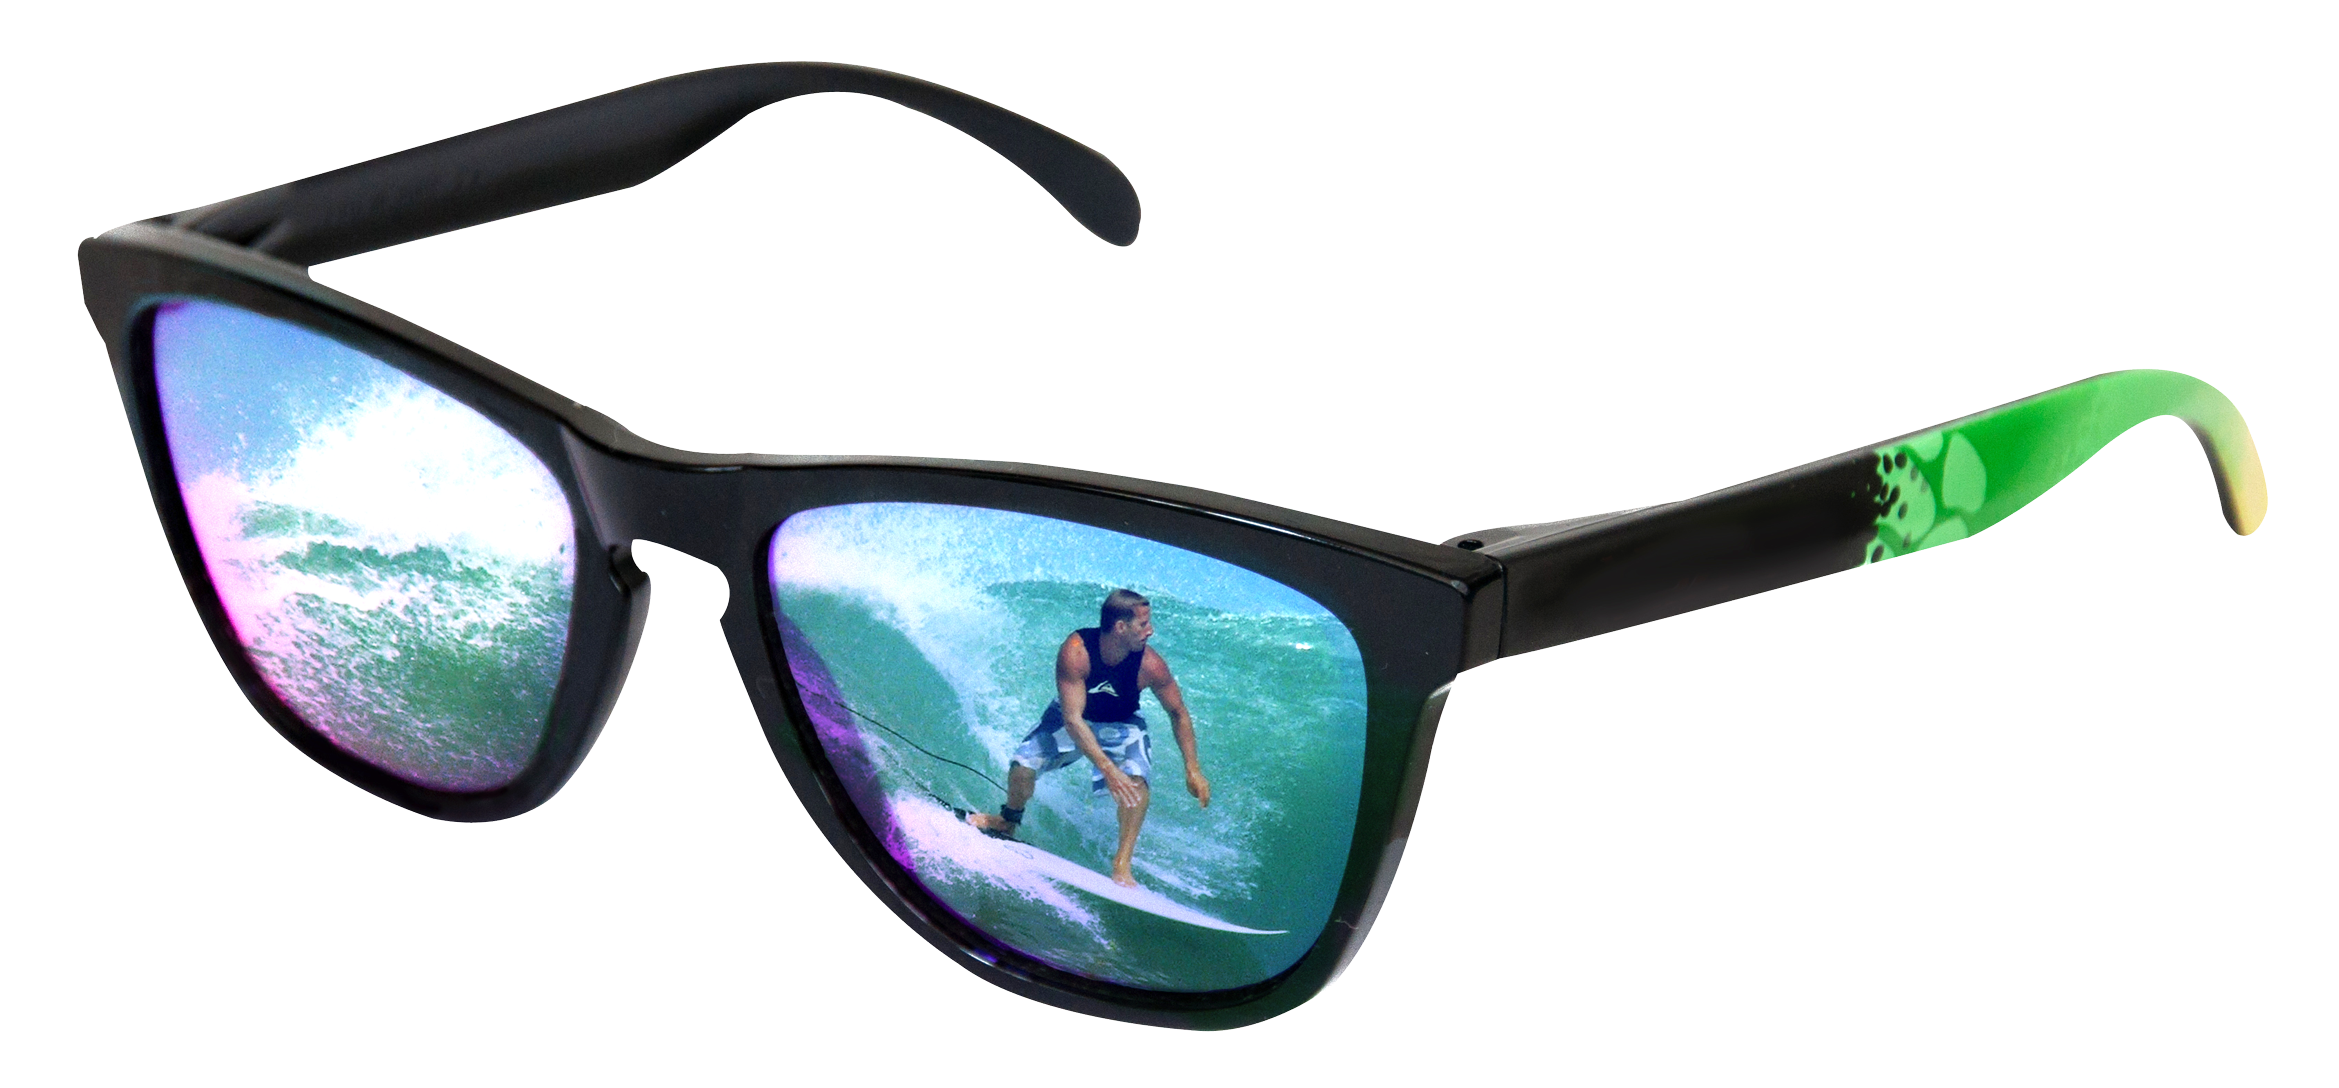 sunglasses png transparent - Sunglass PNG